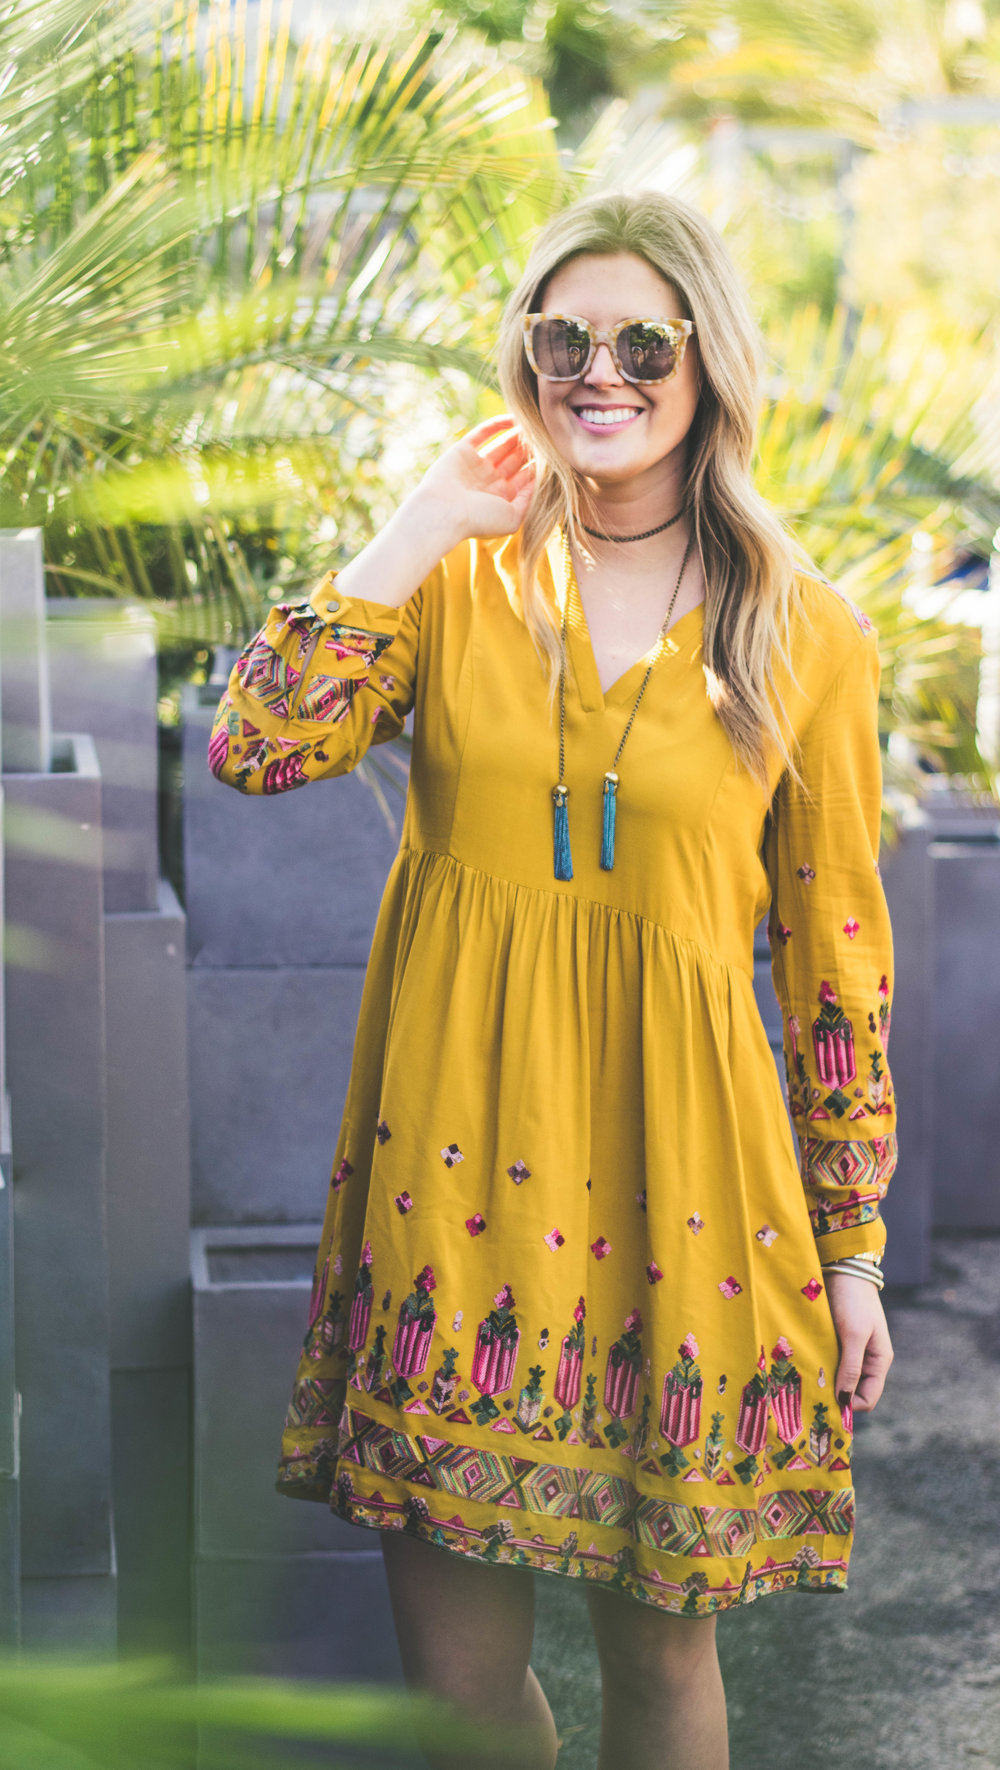 anthropologie-yellow-dress.jpg